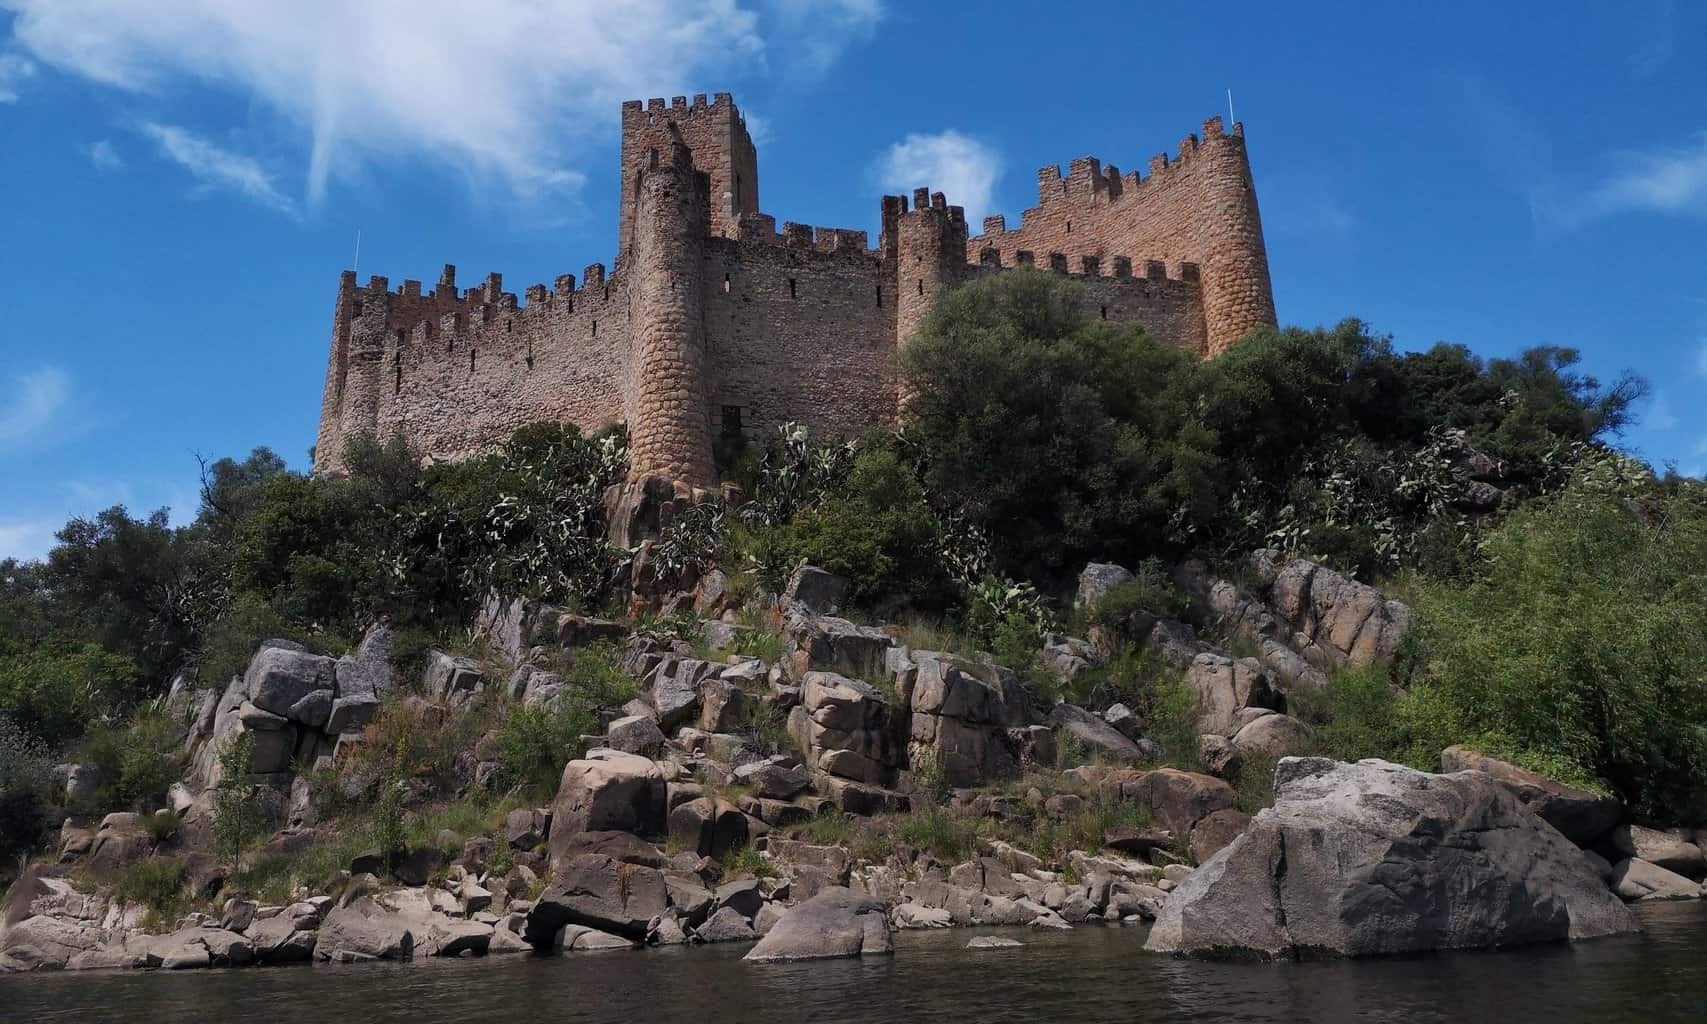 Castle of Almourol on the Tagus River in Portugal.